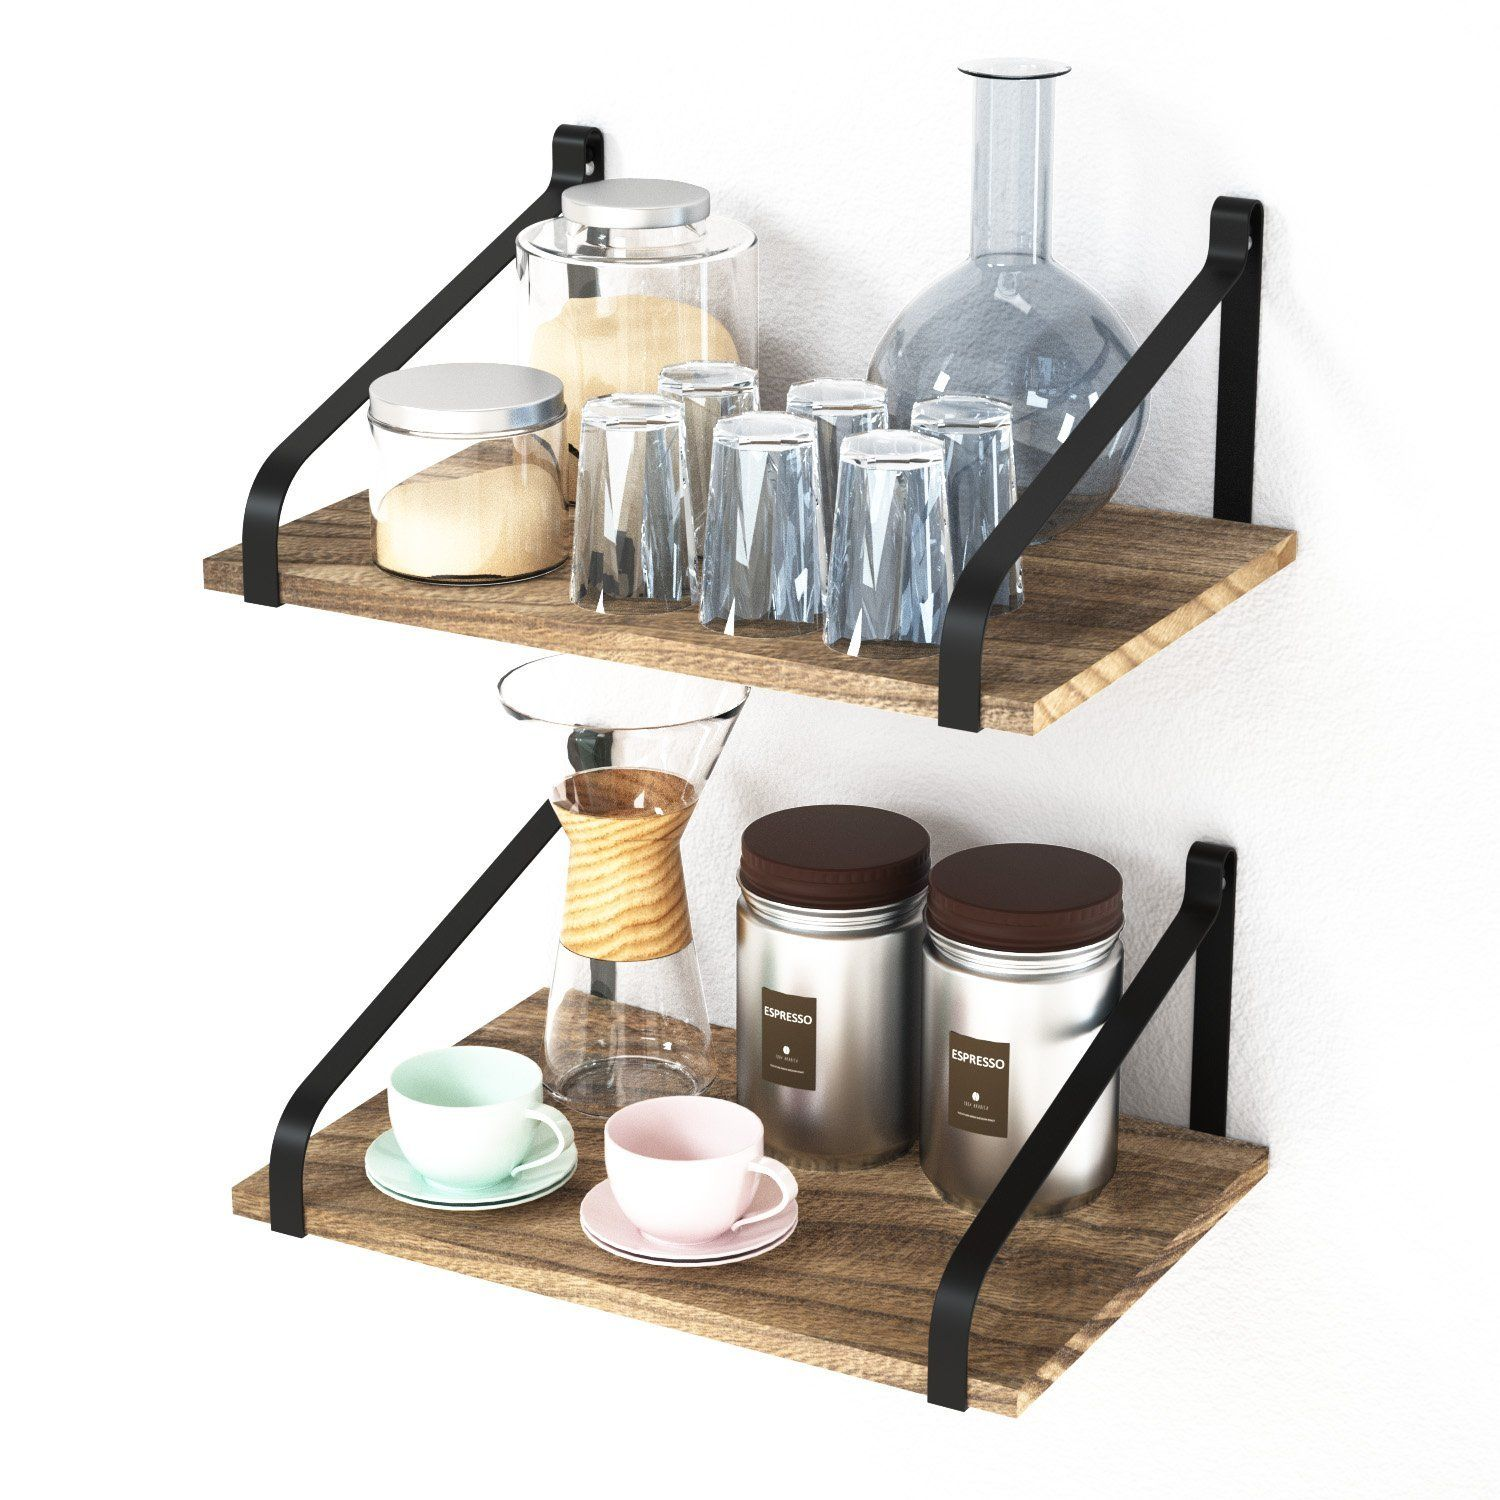 Floating Shelves Wall Mount Rustic Wood Wall Shelves With Large Storage L 16 X W 11 For Kitchen Liv Wooden Wall Shelves Wood Wall Shelf Rustic Wood Walls